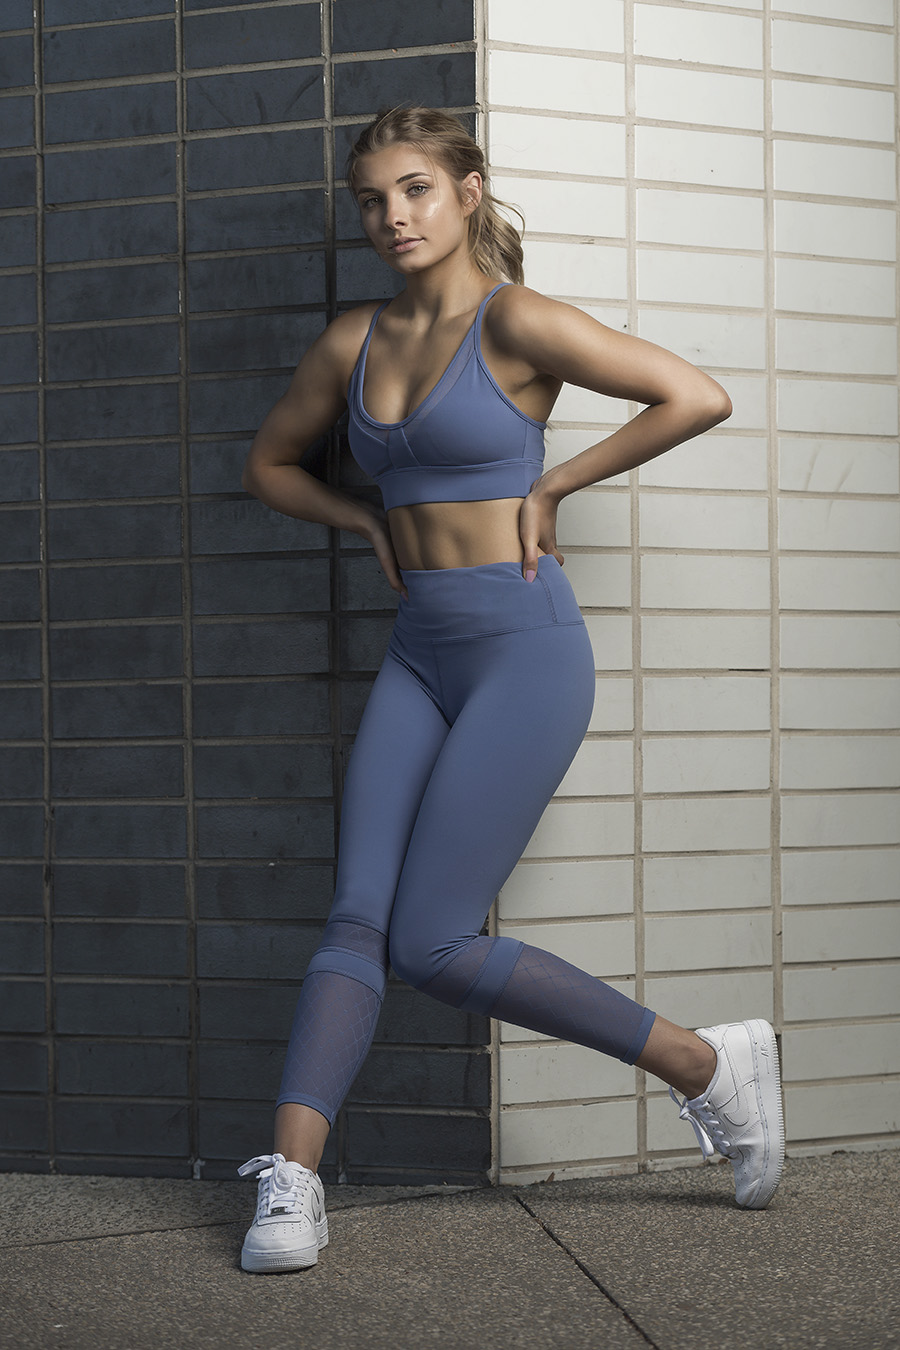 Nikita performing a traditional fashion pose whilst wearing her fitness garments